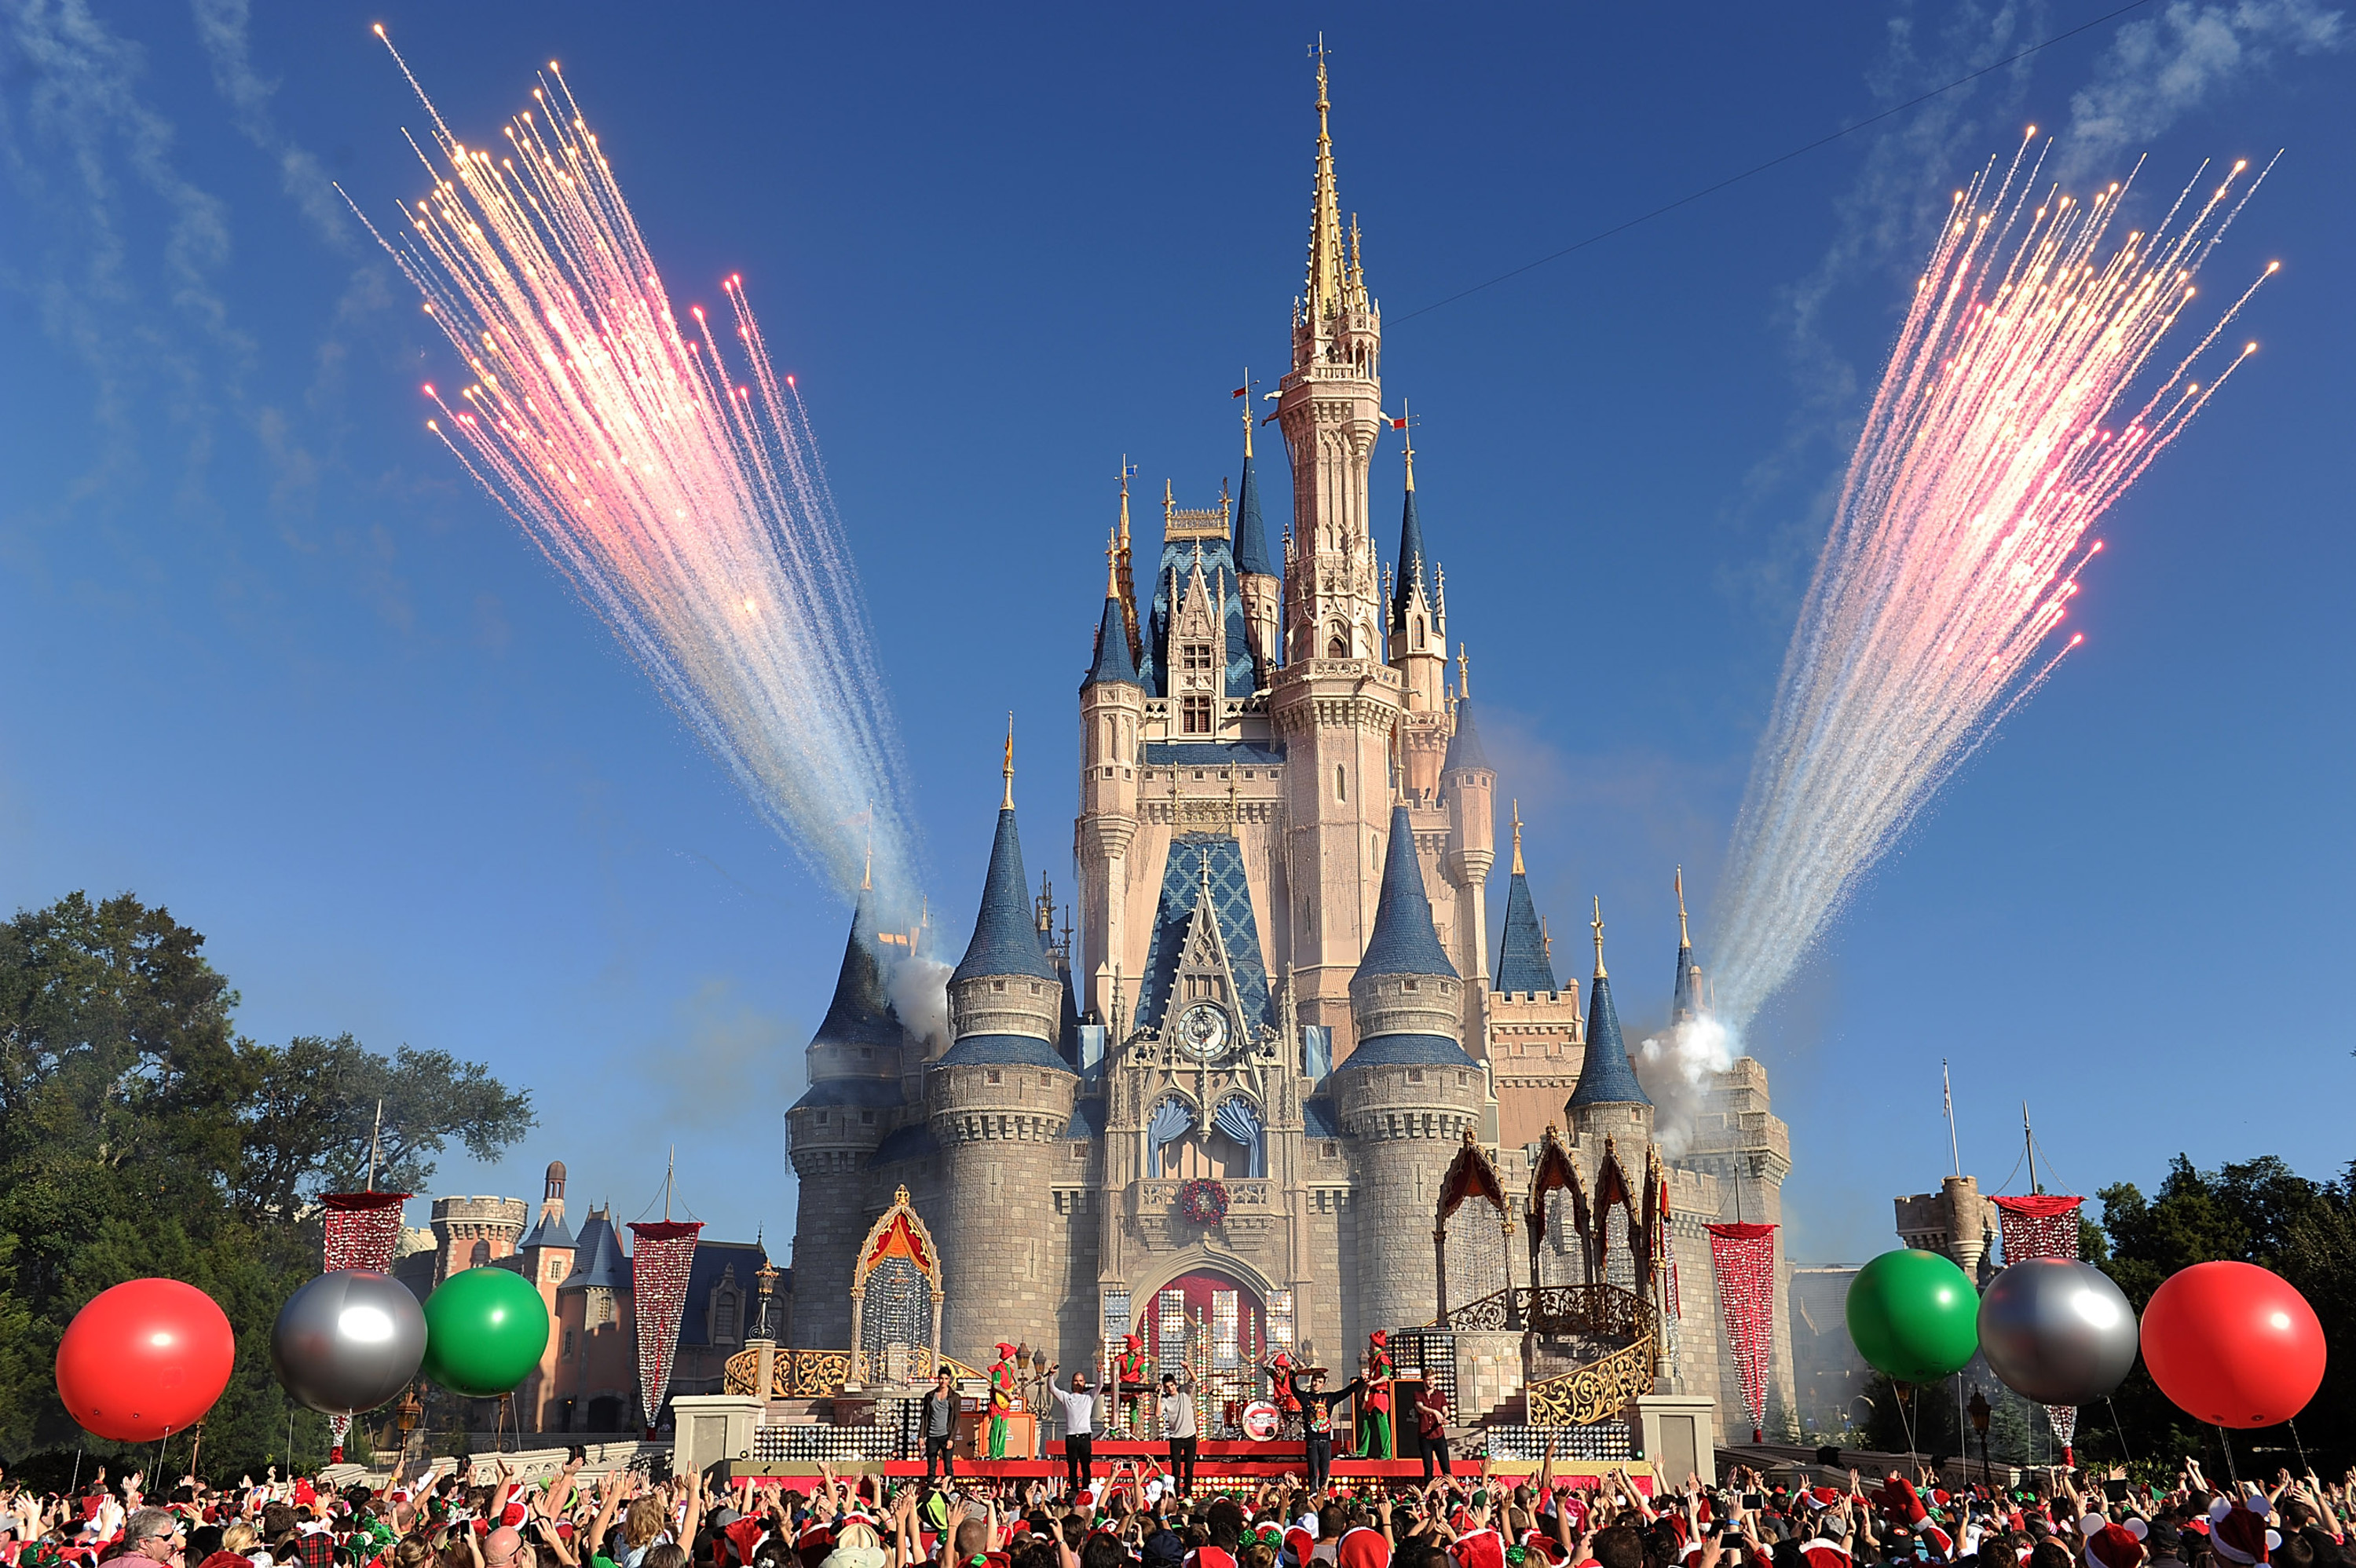 In this handout photo provided by Disney Parks, The Wanted performs while taping the Disney Parks Christmas Day Parade TV special on Dec. 6, 2013 at the Magic Kingdom park at Walt Disney World Resort in Lake Buena Vista, Fla.